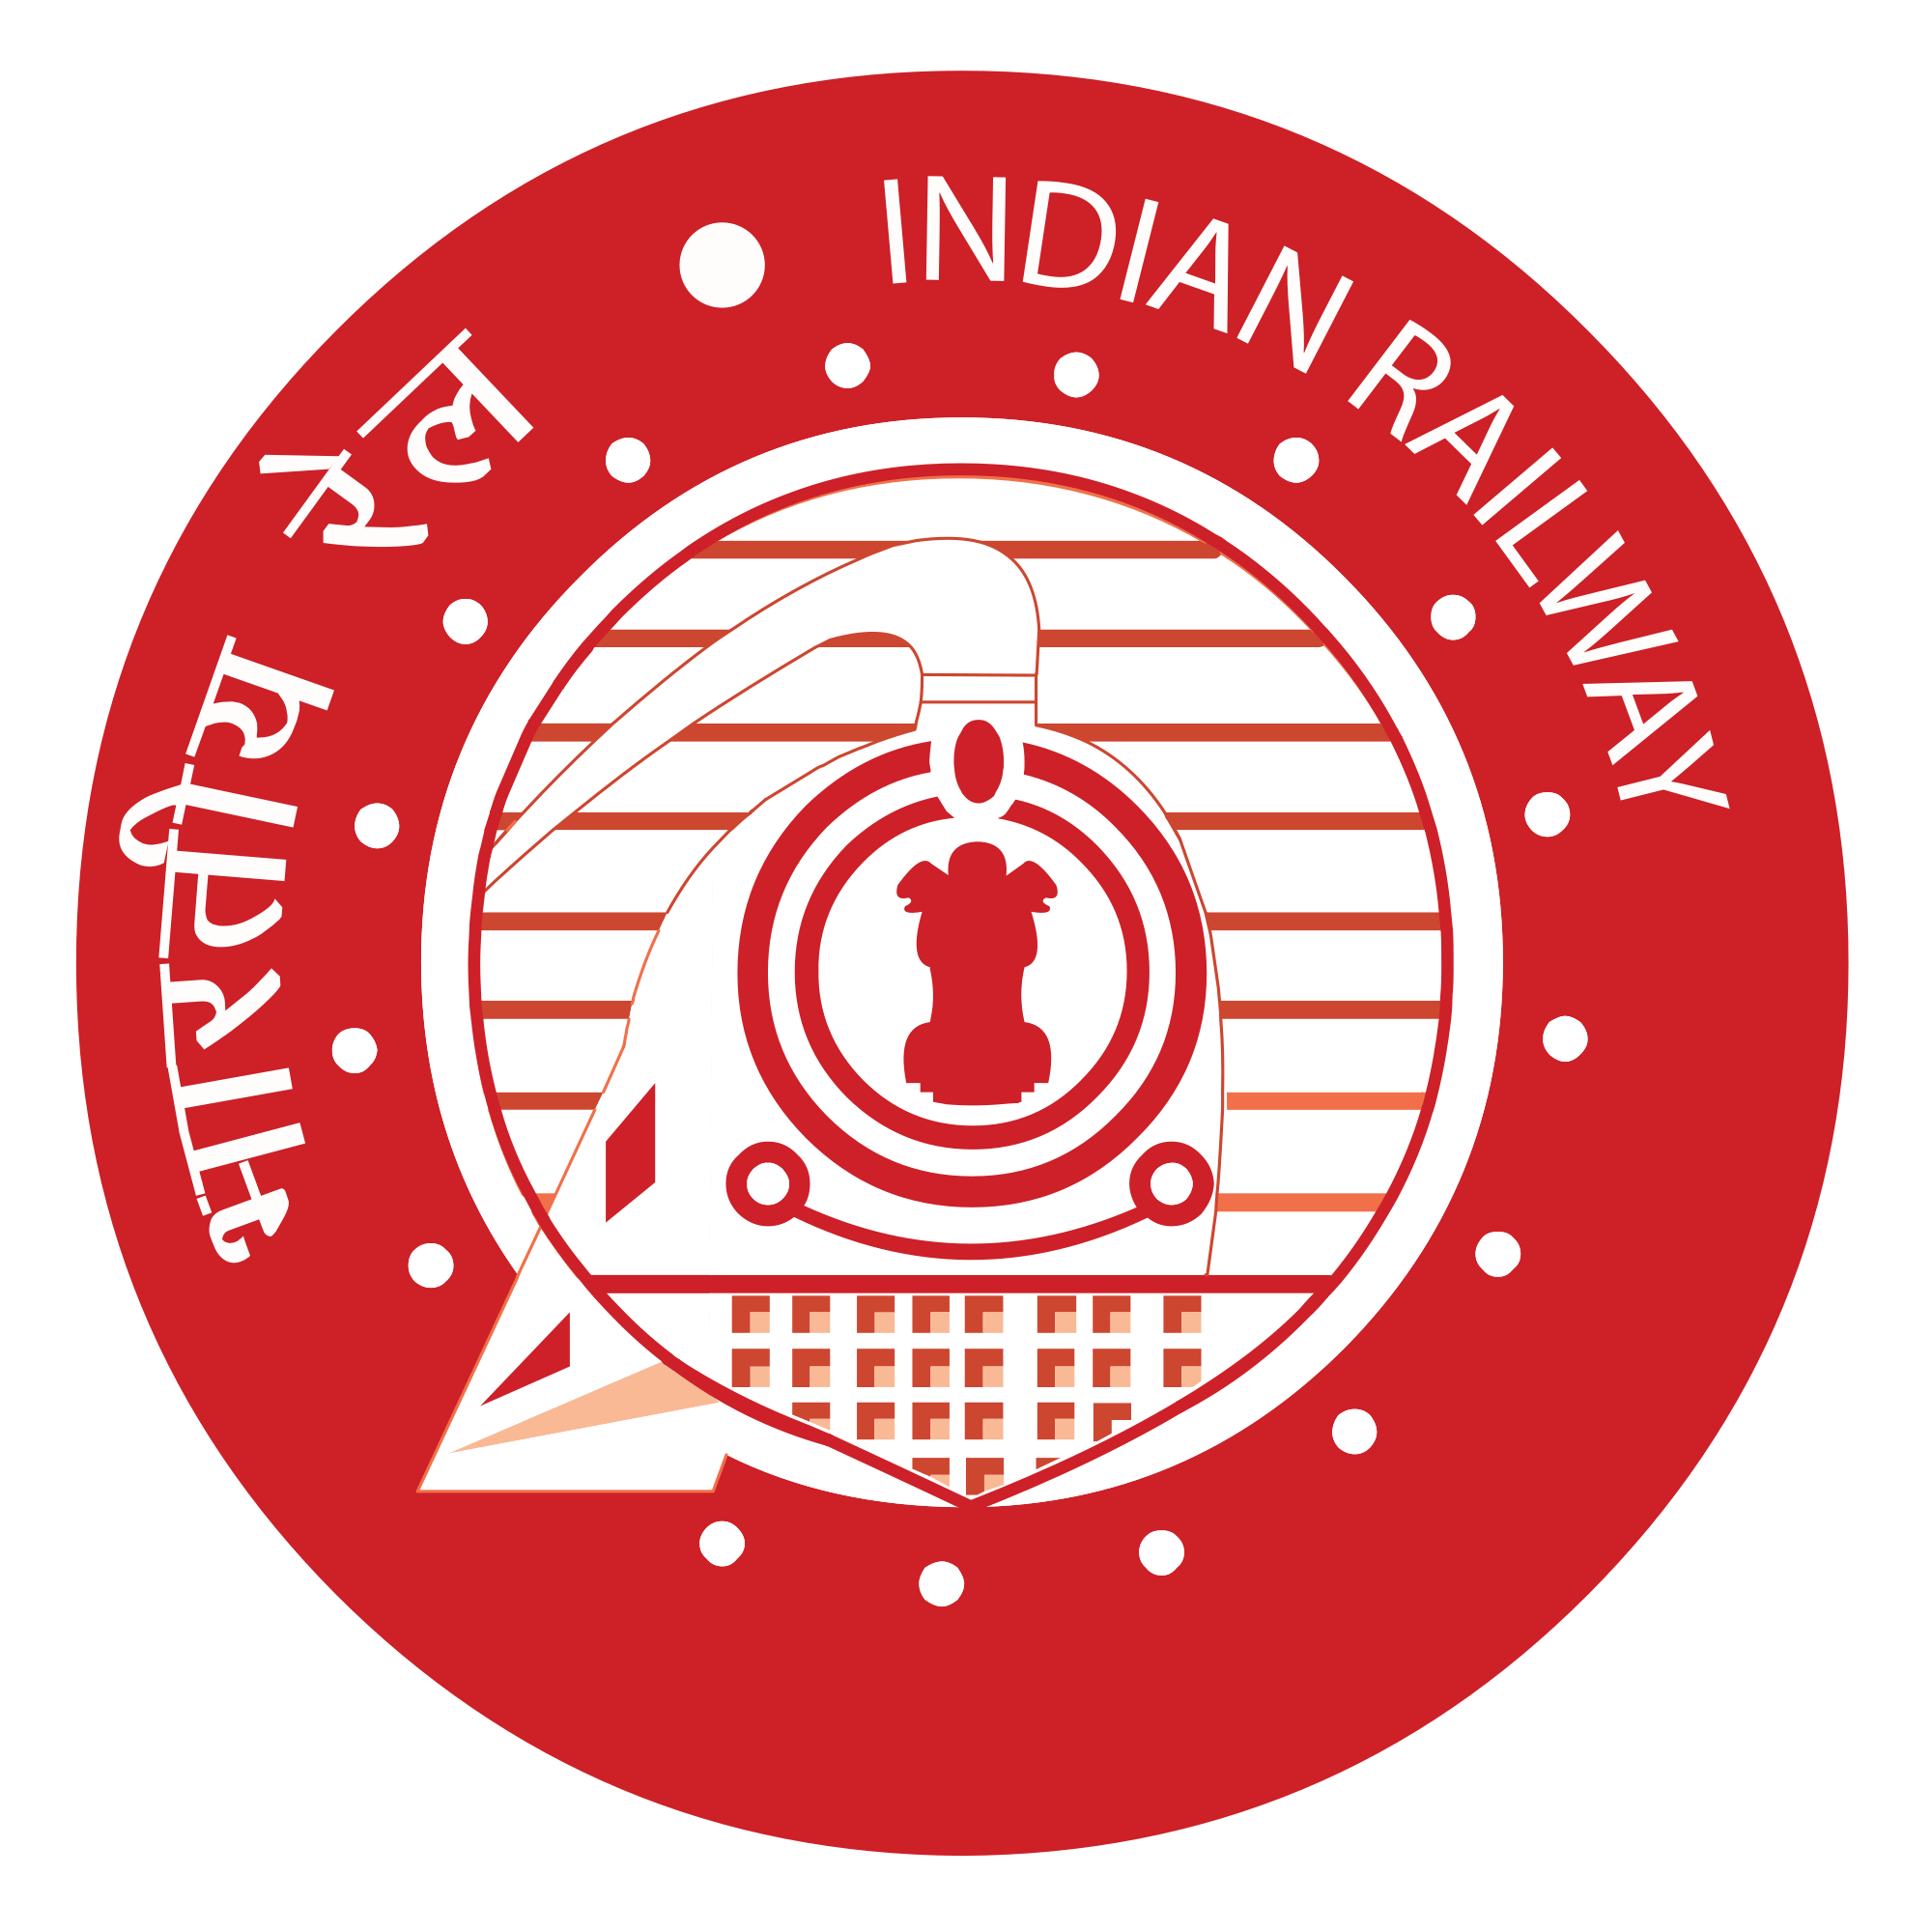 Railway Recruitment Board is Hiring 7000+ engineers - Apply now